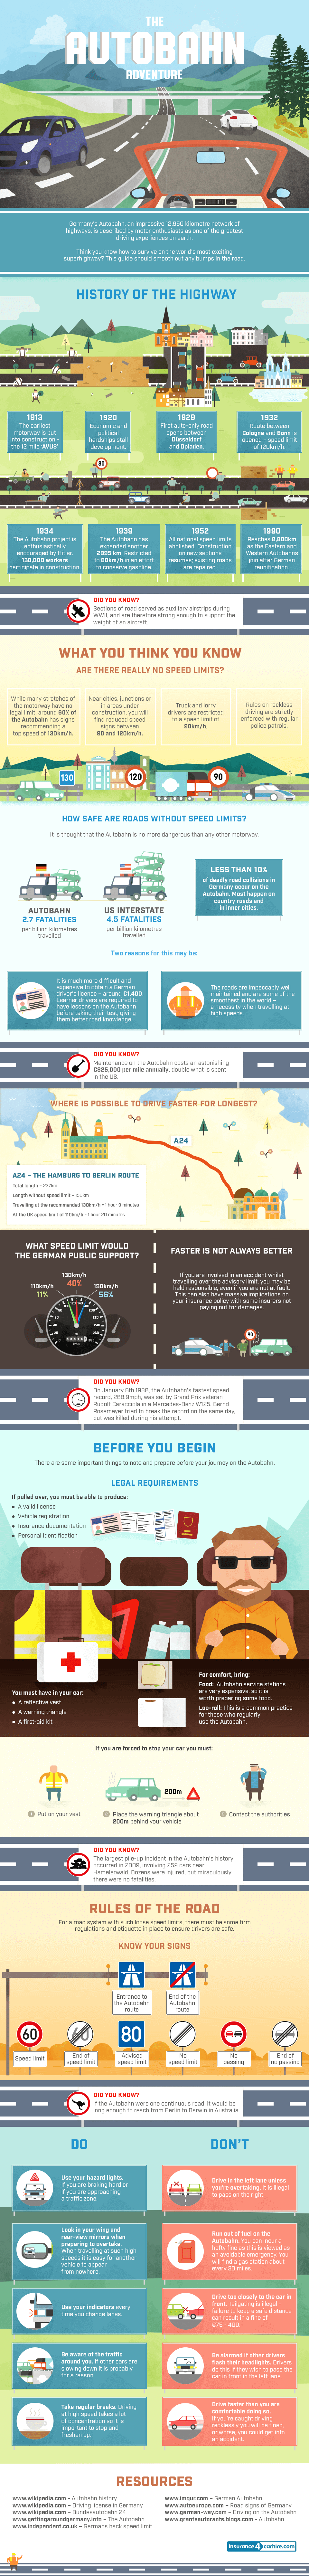 The Autobahn Adventure - an infographic about driving on Germany's motorways